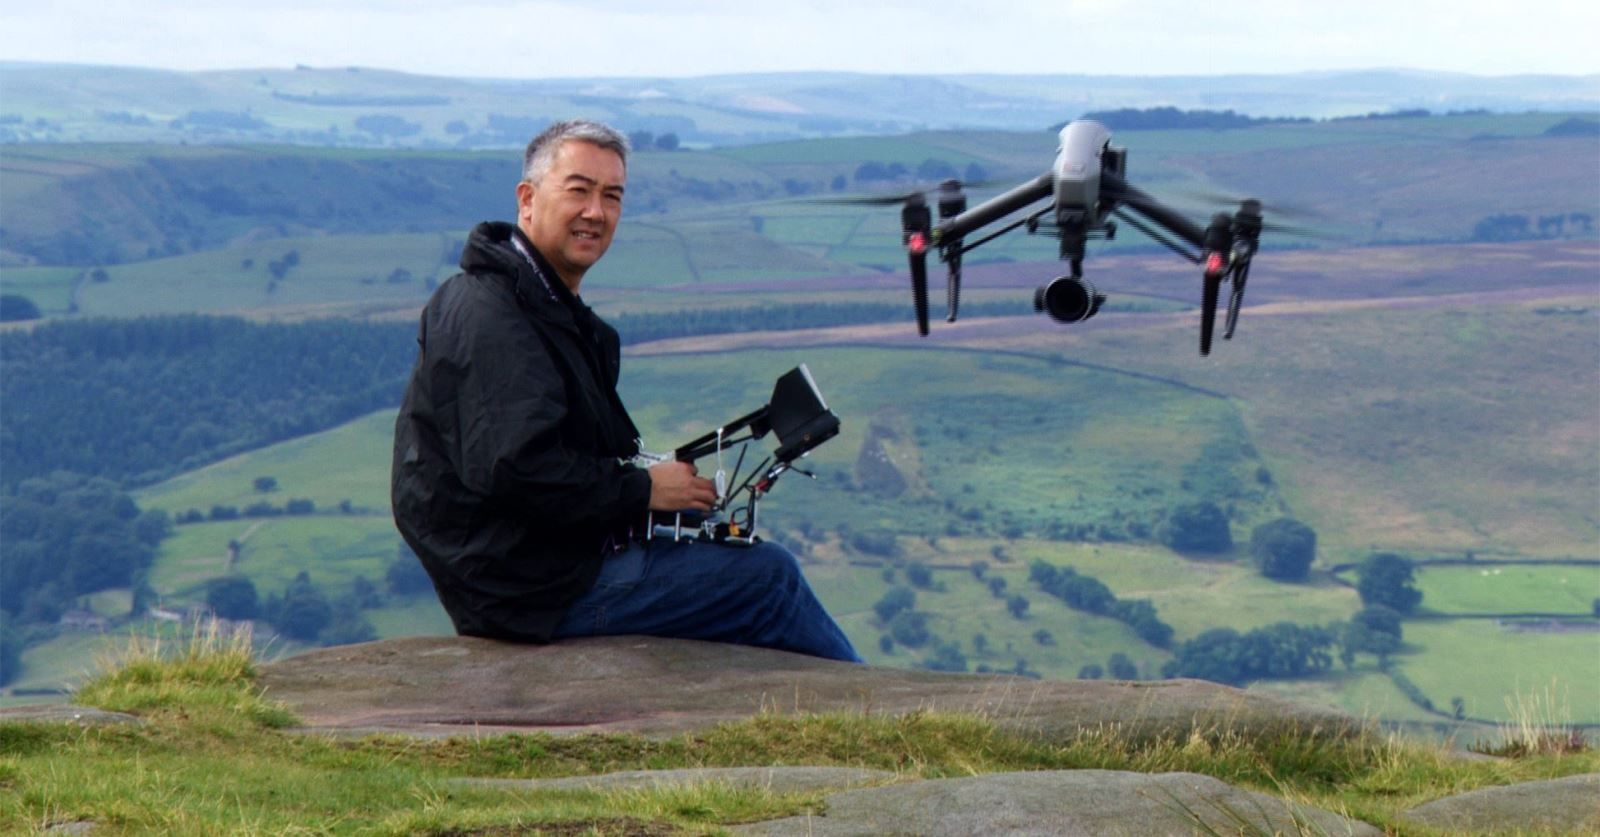 Welcome to new GTC member aerial photography expert Michael Kheng - filiming with a DJI Inspire2 in the Peak District